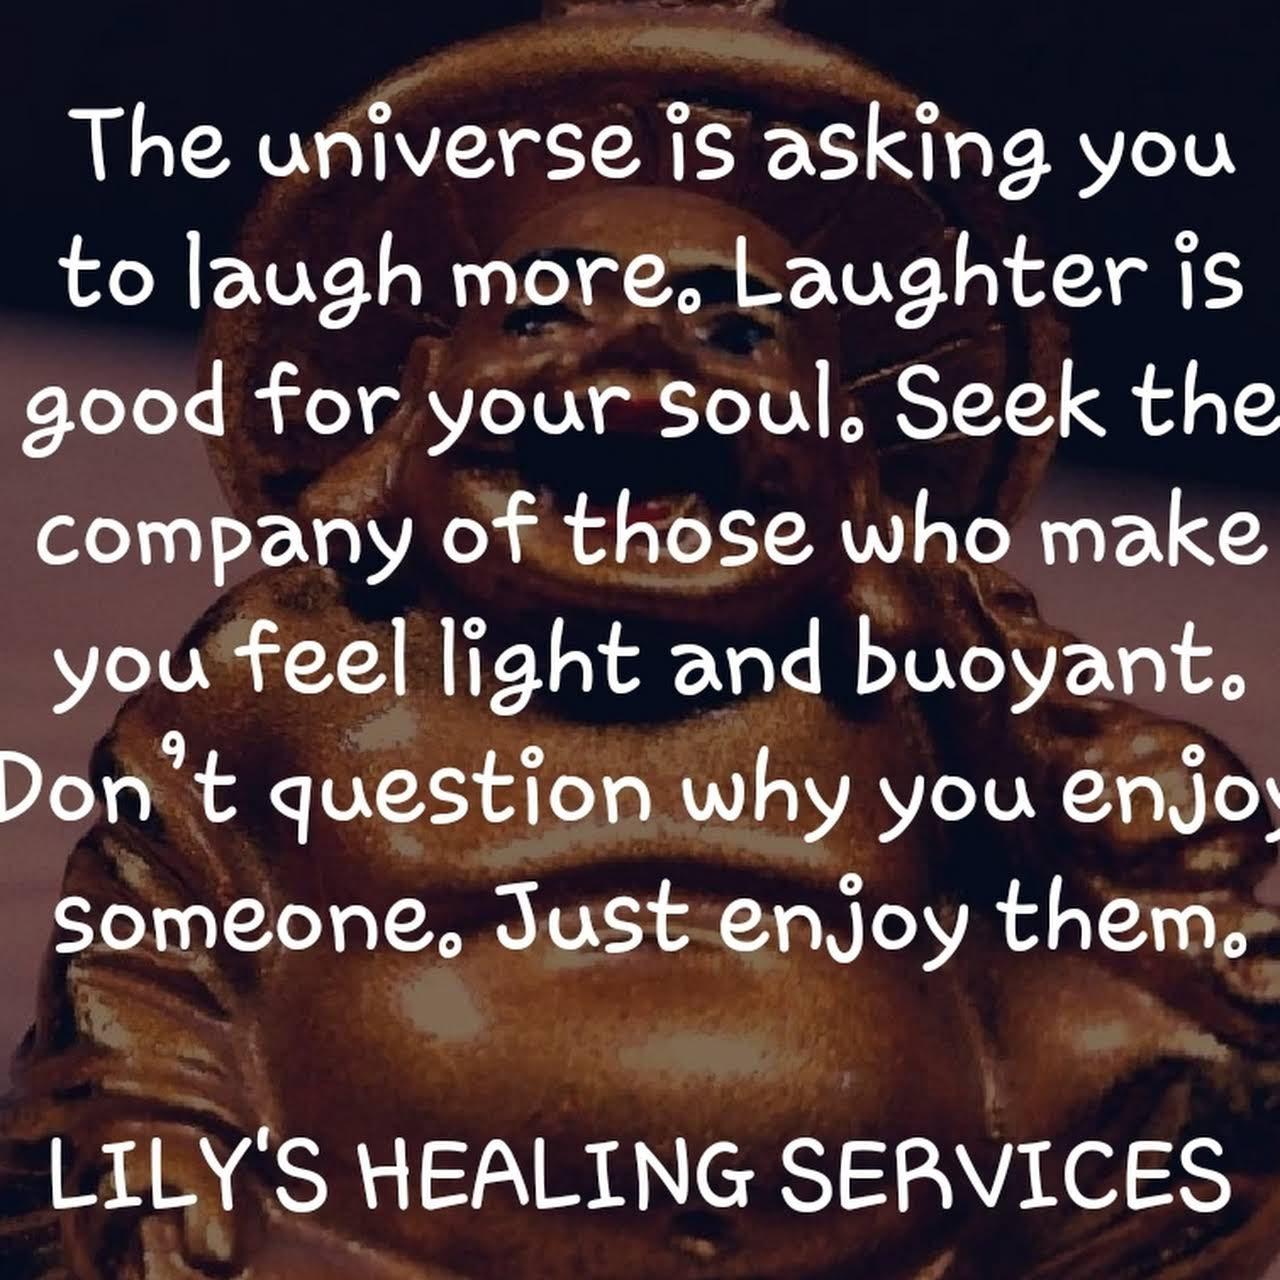 Lilys Healing services and gifts - REIKI/HEALER IN WHALAN